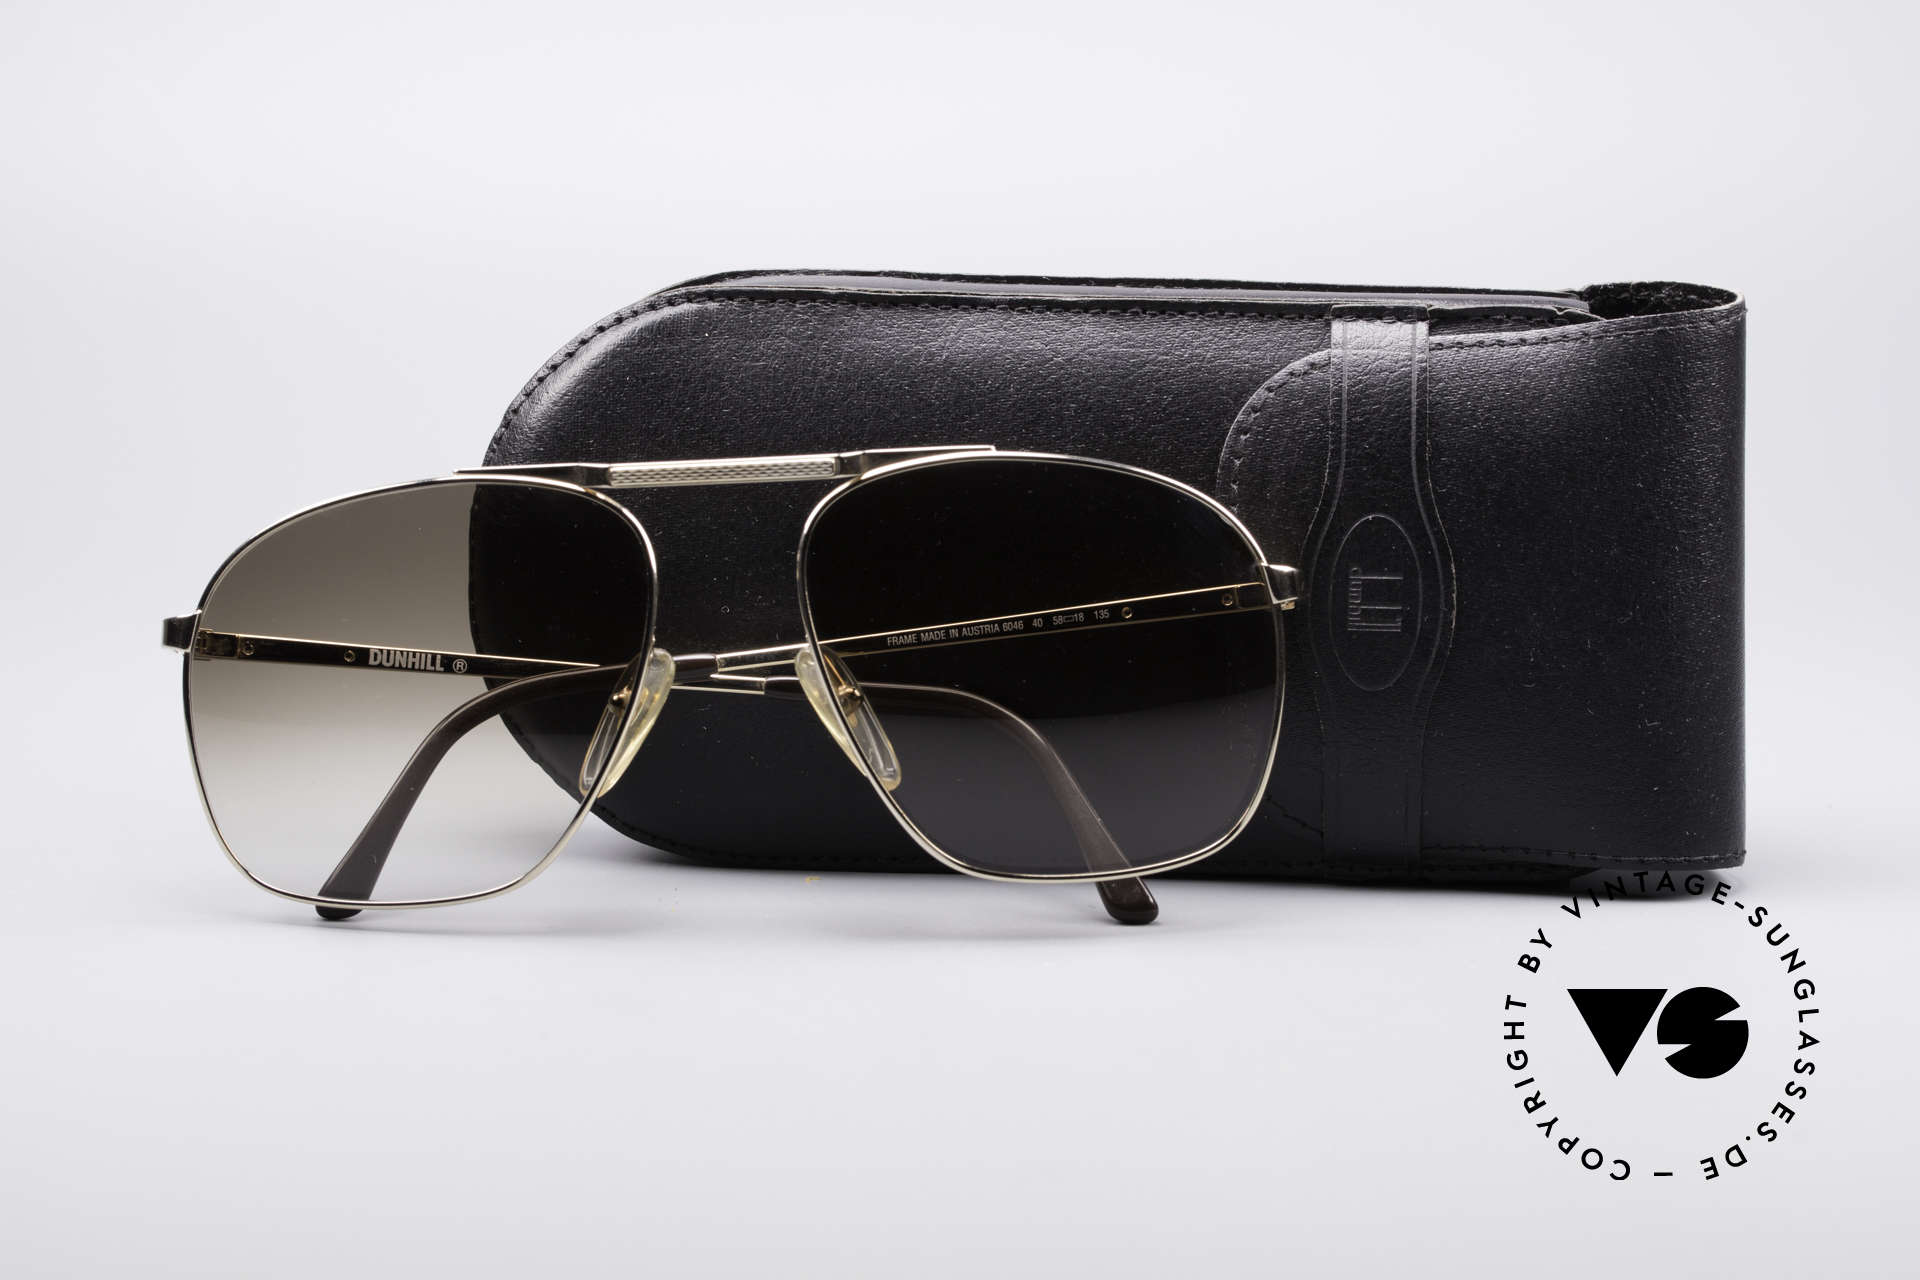 Dunhill 6046 Old 80's Aviator Luxury Glasses, NO RETRO pilots SHADES, but authentic 1980's rarity, Made for Men